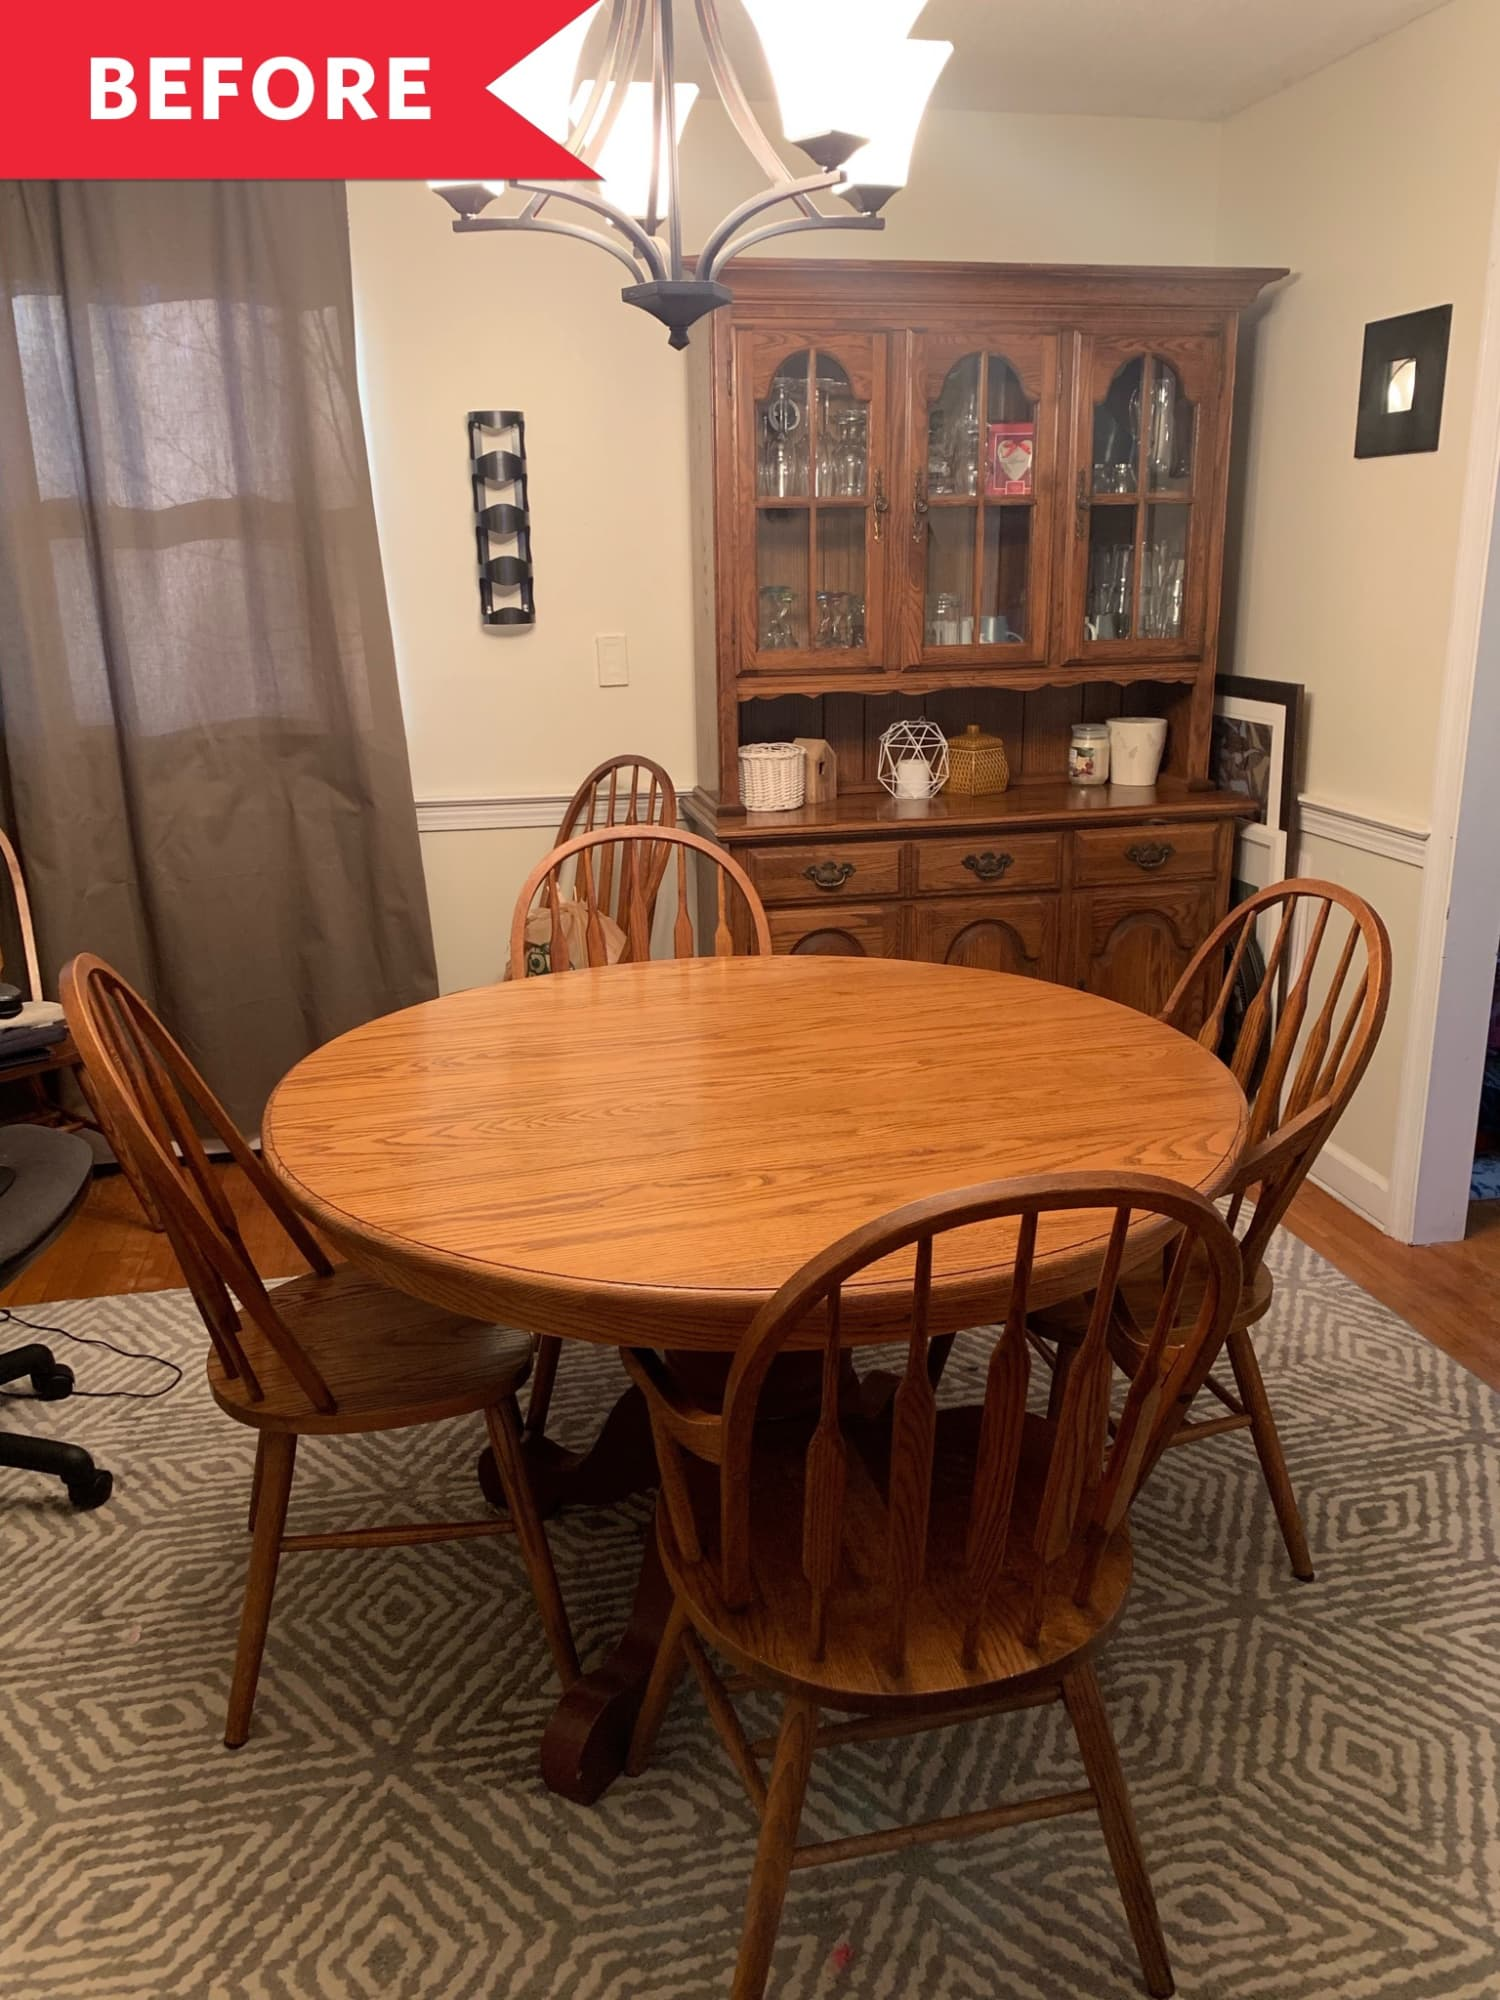 Before & After: A Little Bit of Paint Gives This '80s Dining Set a Fresh New Vibe